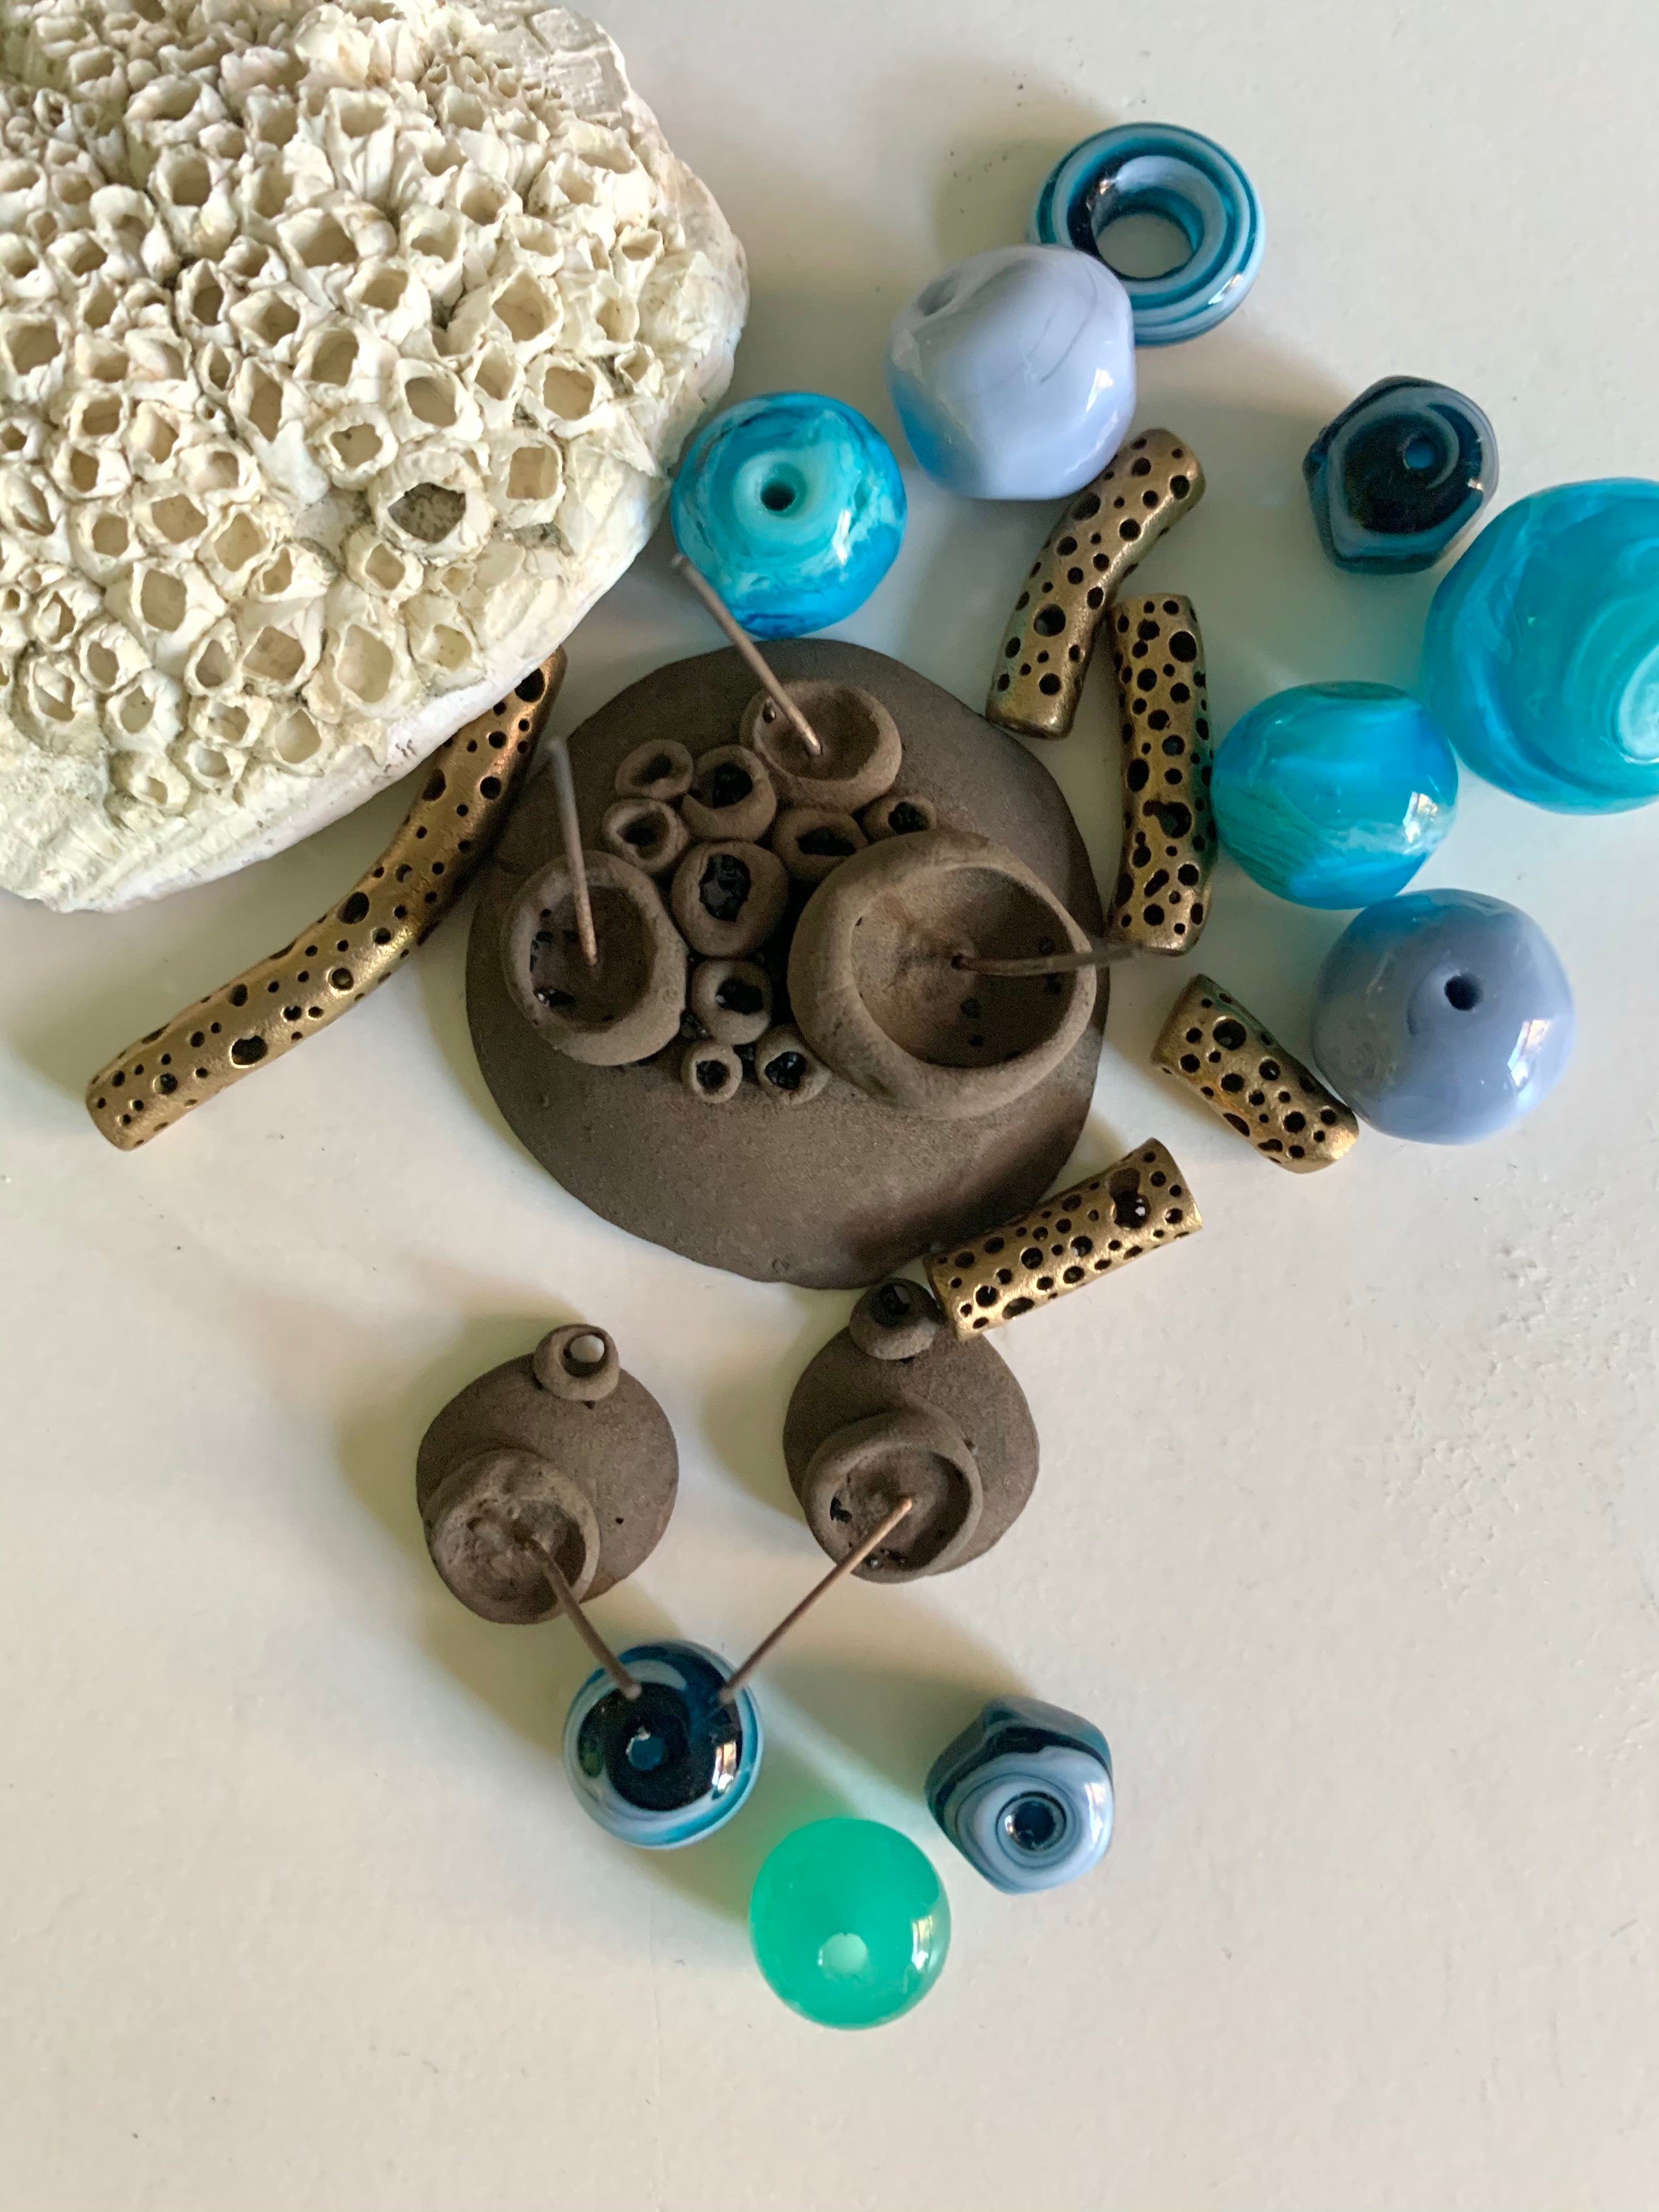 Artisan made ocean coloured glass beads with new bronze barnacle jewelry pieces